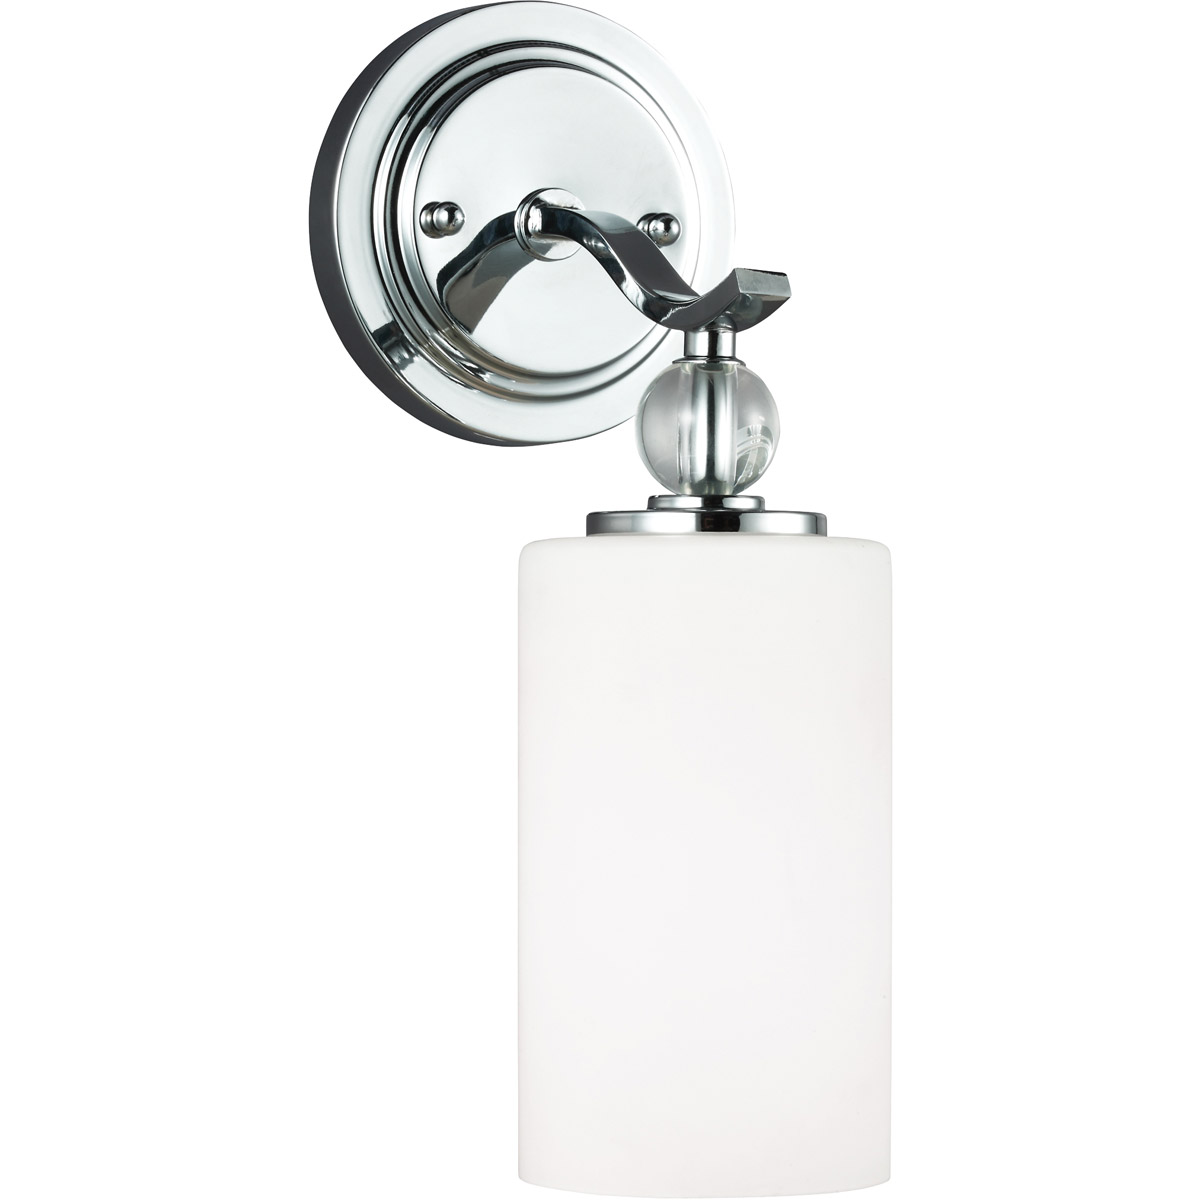 Sea Gull 4113401BLE-05 Englehorn 1 Light 5 inch Chrome / Optic Crystal Bath Sconce Wall Light in Fluorescent photo